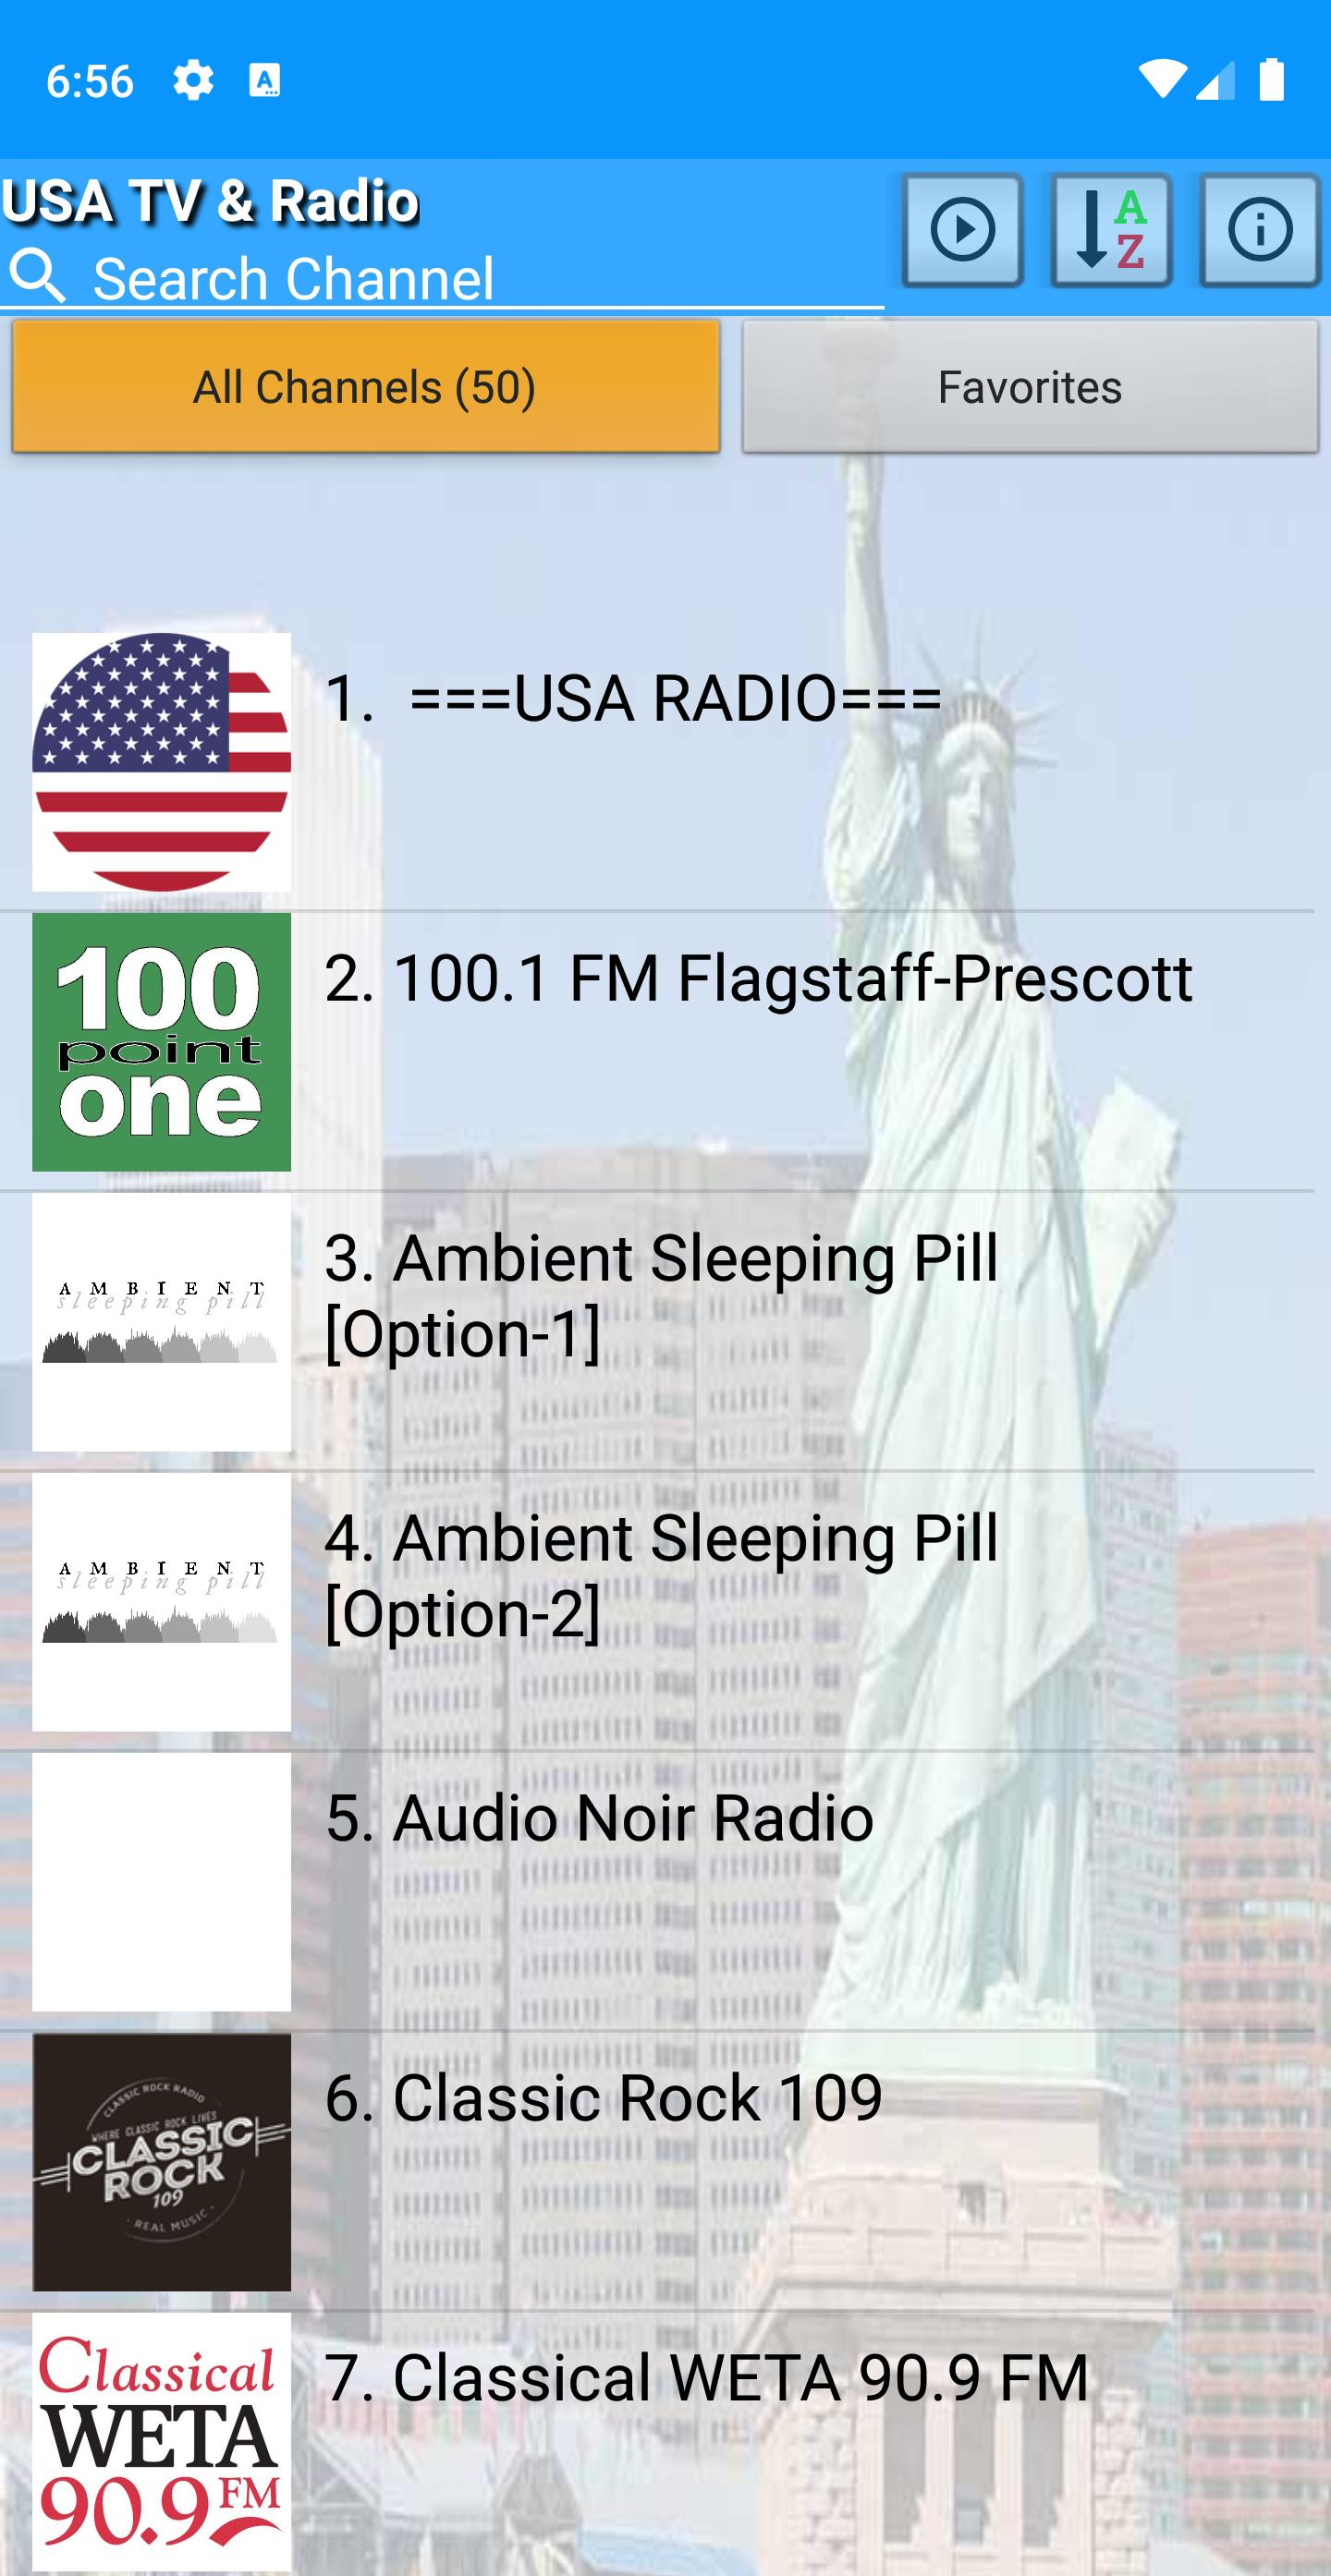 USA TV & Radio for Android - APK Download